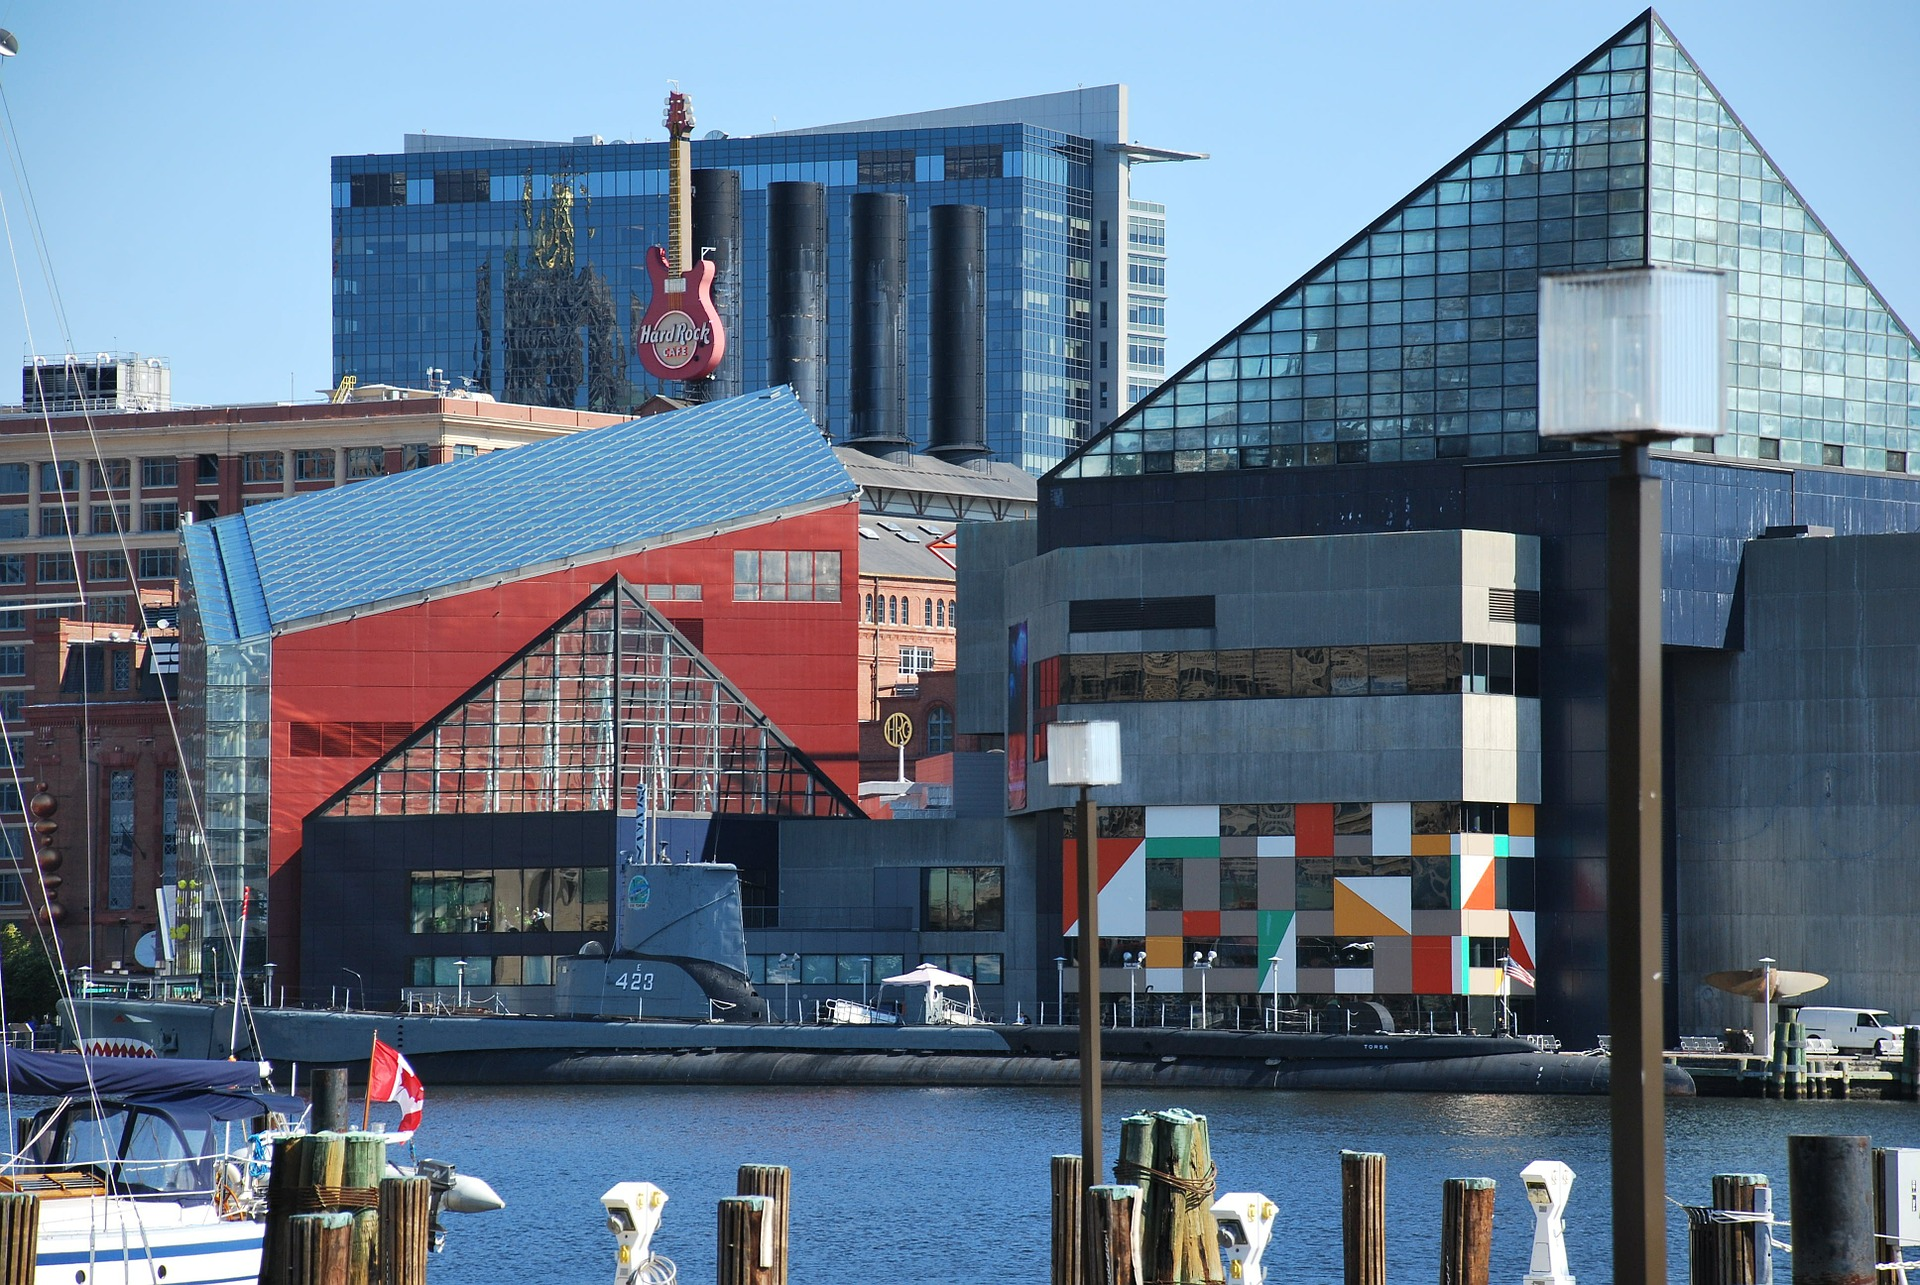 baltimore-inner-harbor-569526_1920